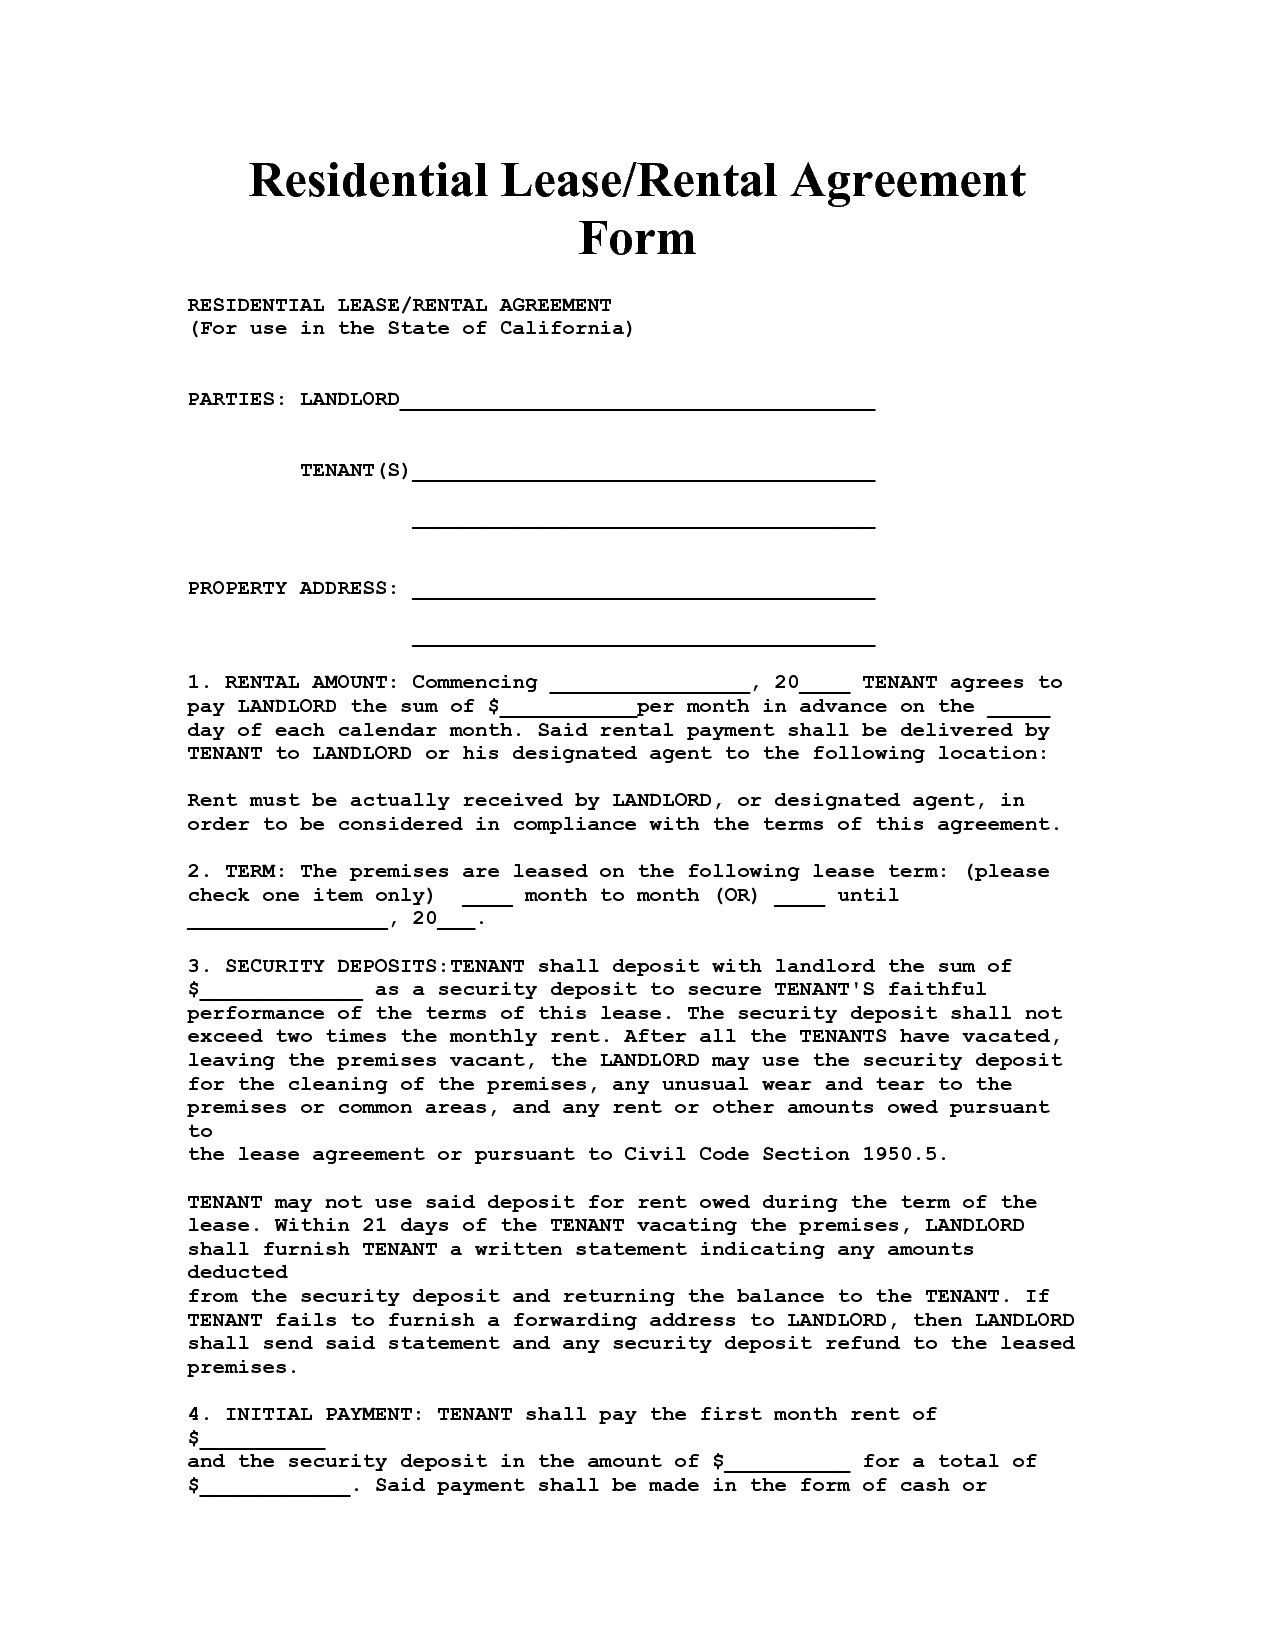 Lease Agreement Form Free Printable Documents Rental Agreement Templates Lease Agreement Room Rental Agreement